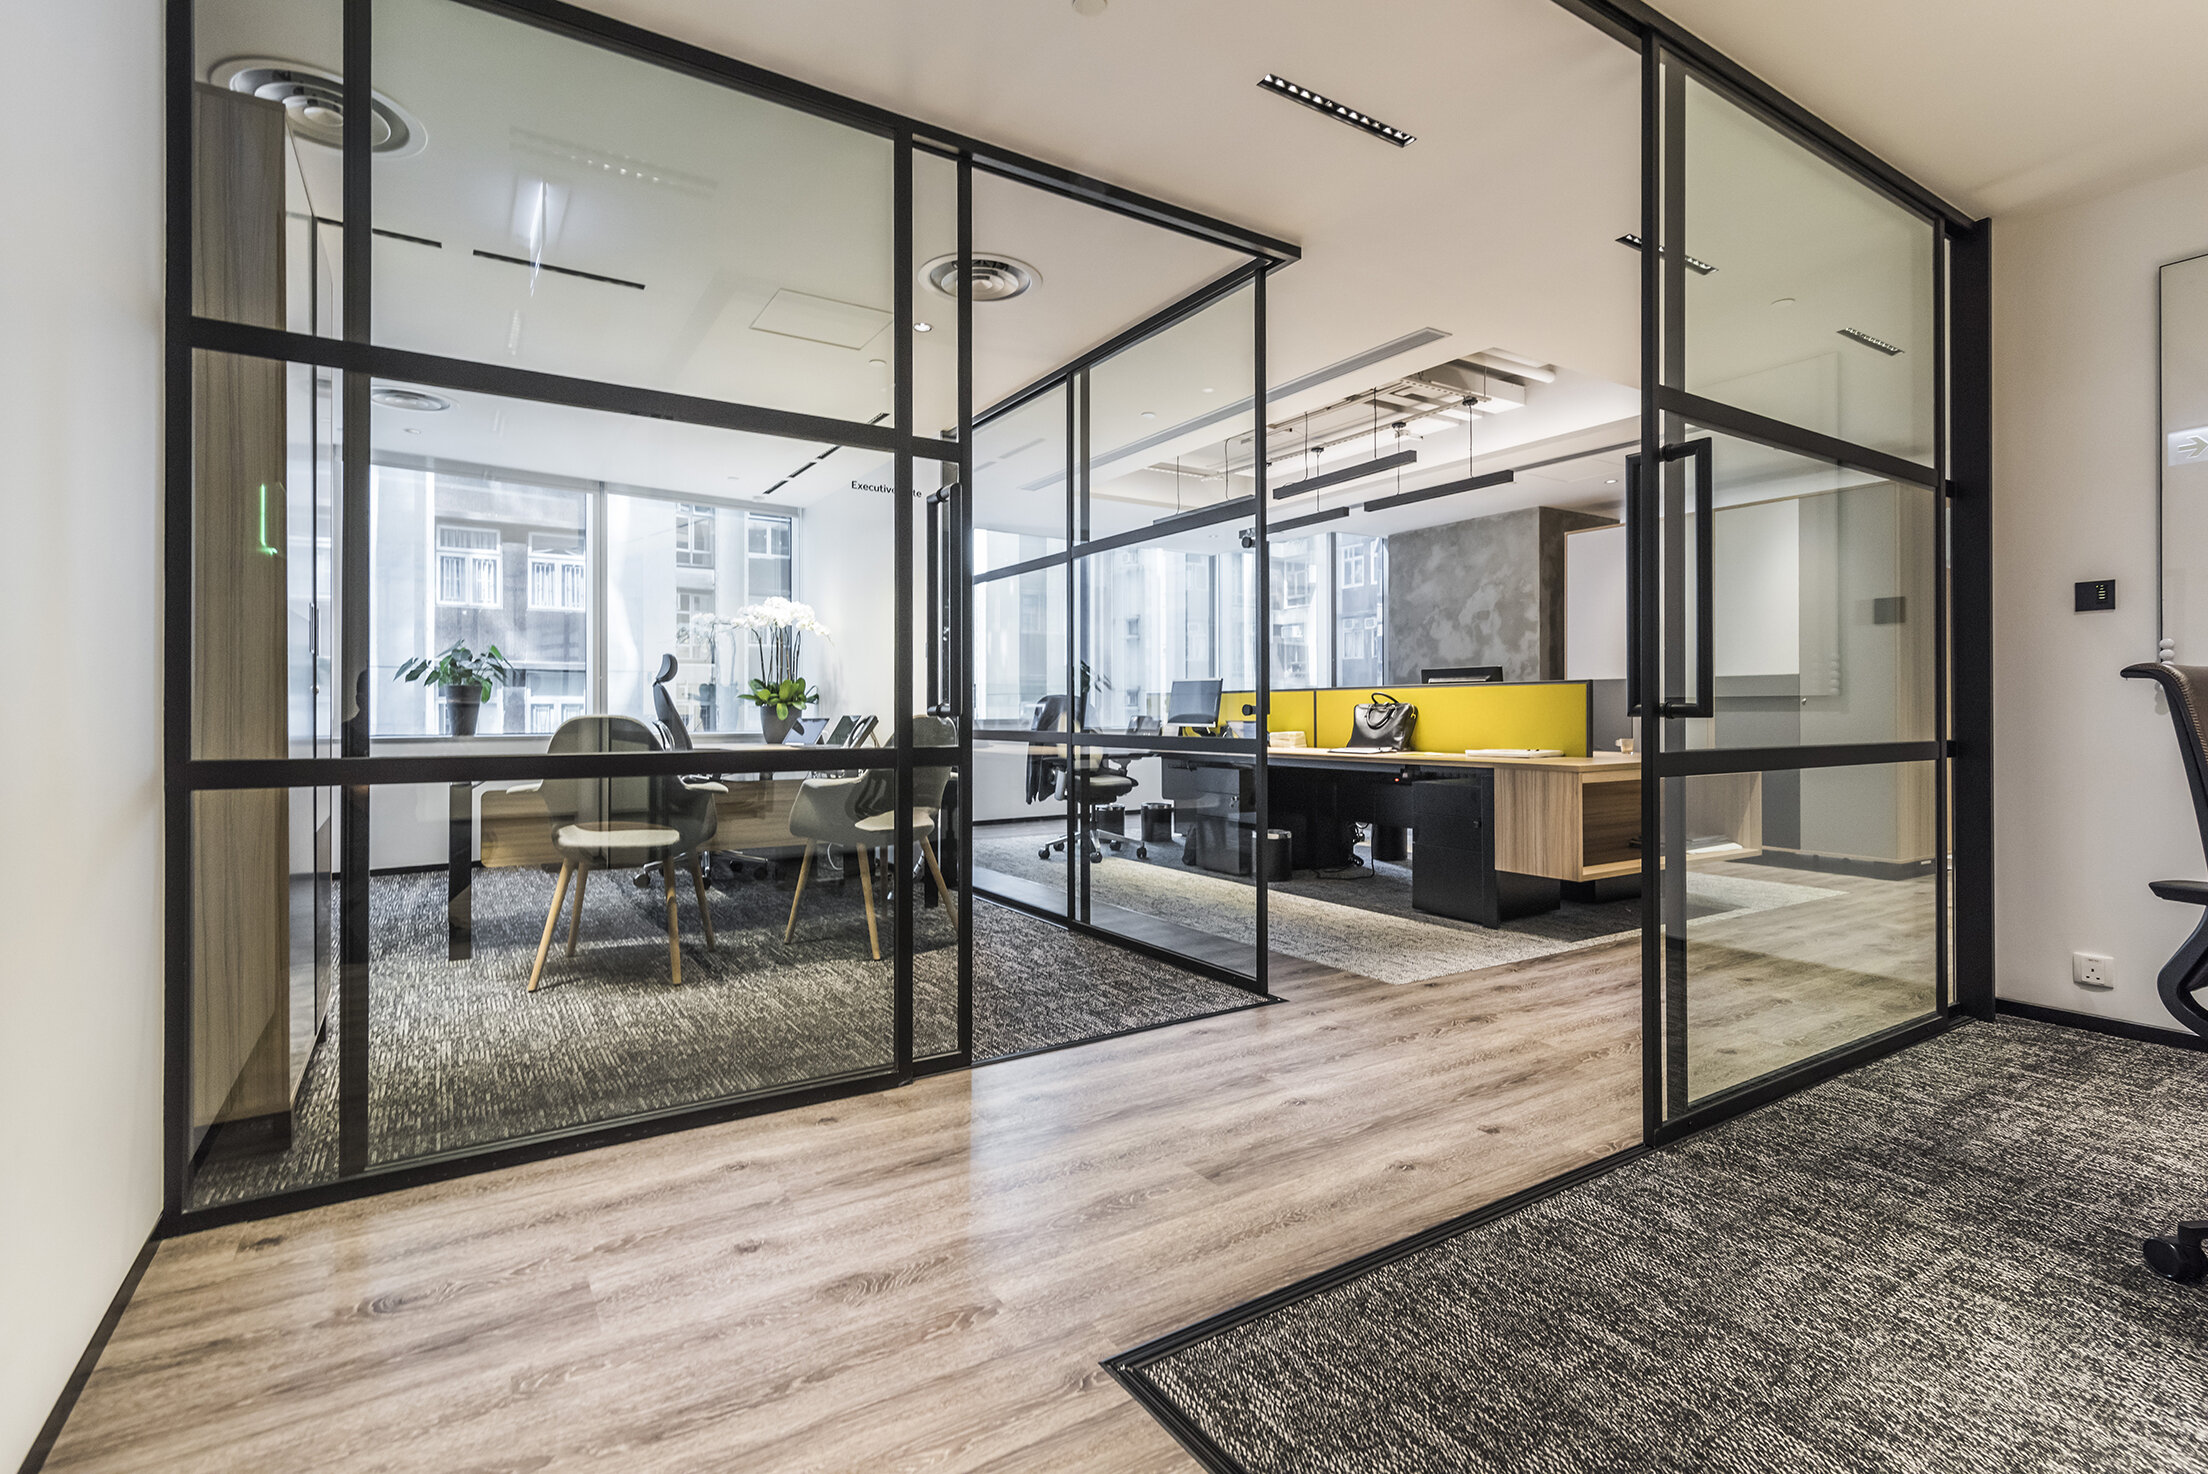 jeb-partitions-summit-integra-pivot-door-hongkong-office-14.jpg